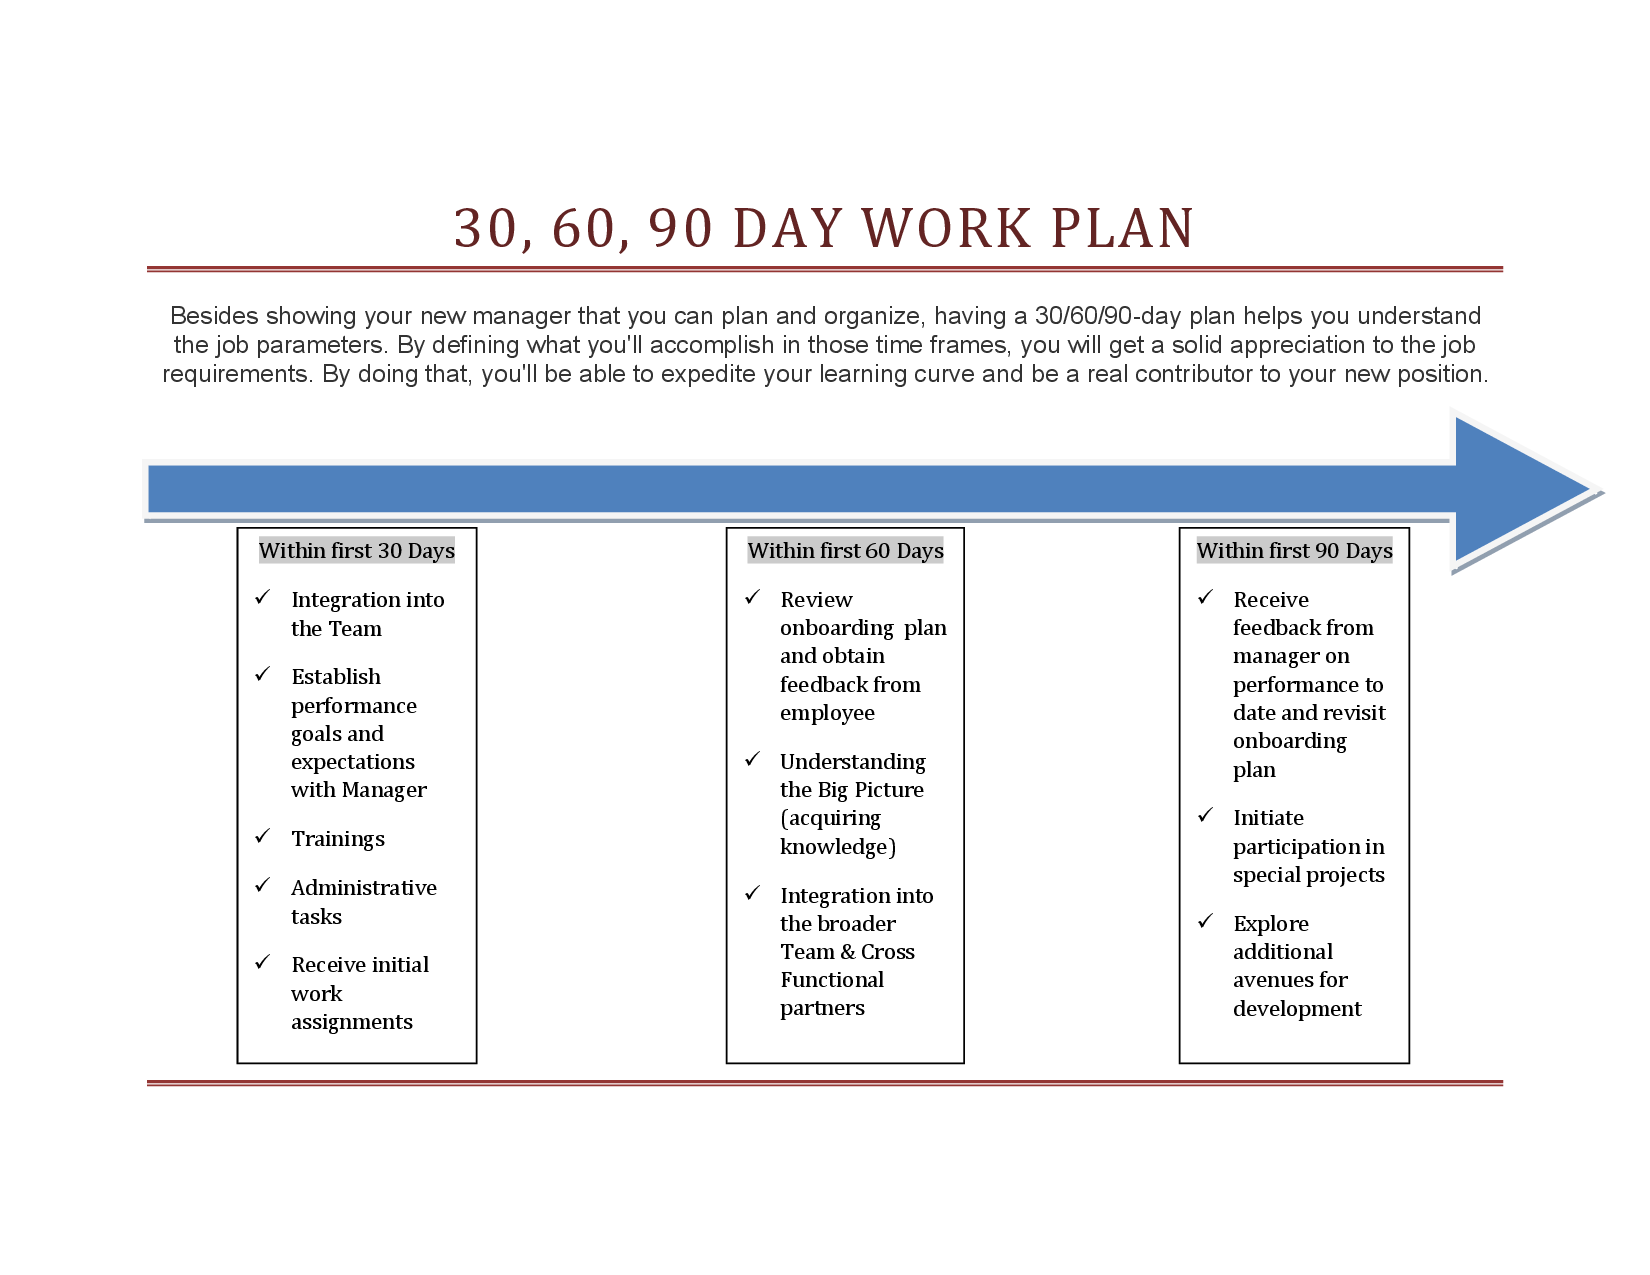 first 90 day plan template - 30 60 90 day work plan templatepdf by tinammckenna